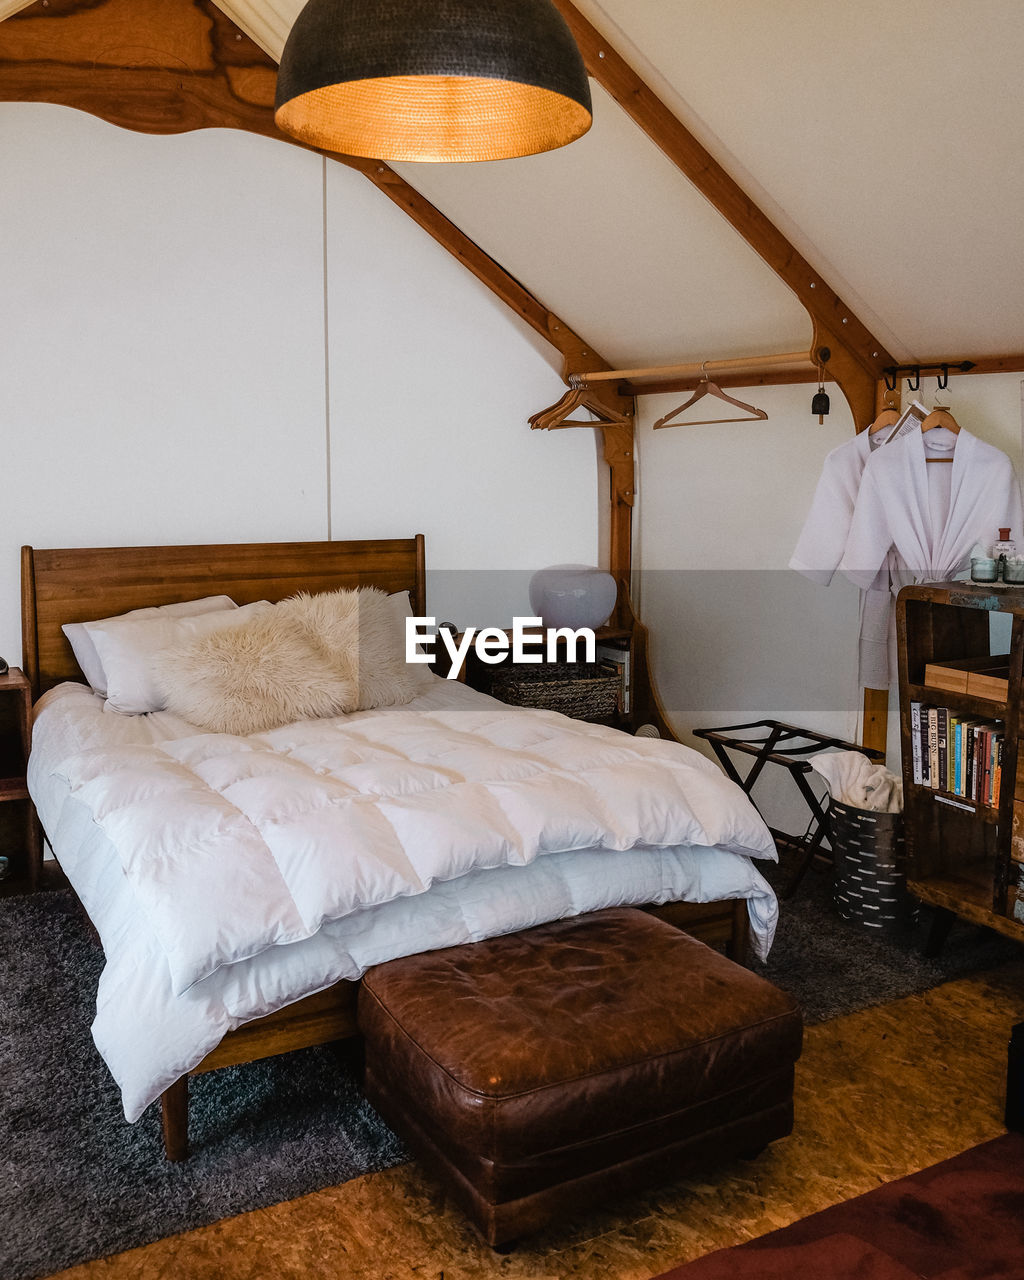 ELECTRIC LAMP ON BED